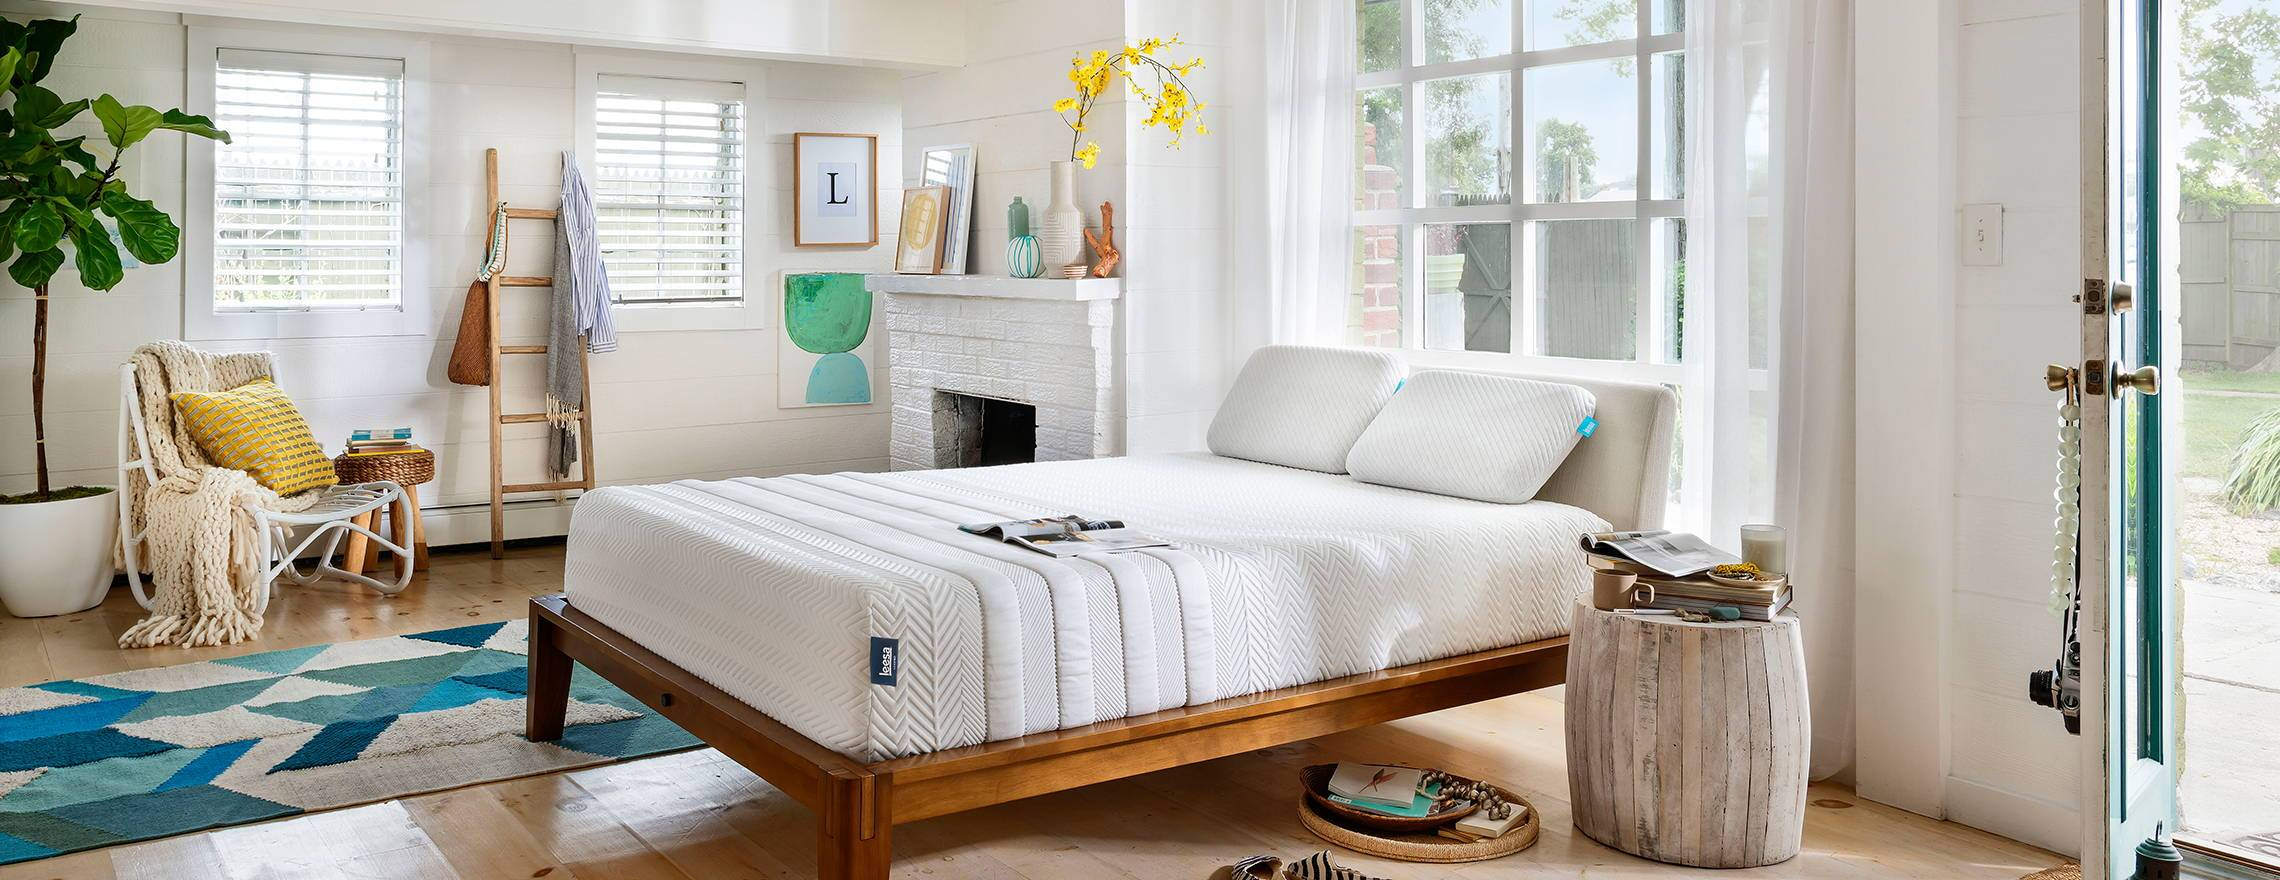 white_leesa_mattress_in_decorated_room_open_door_outside_view